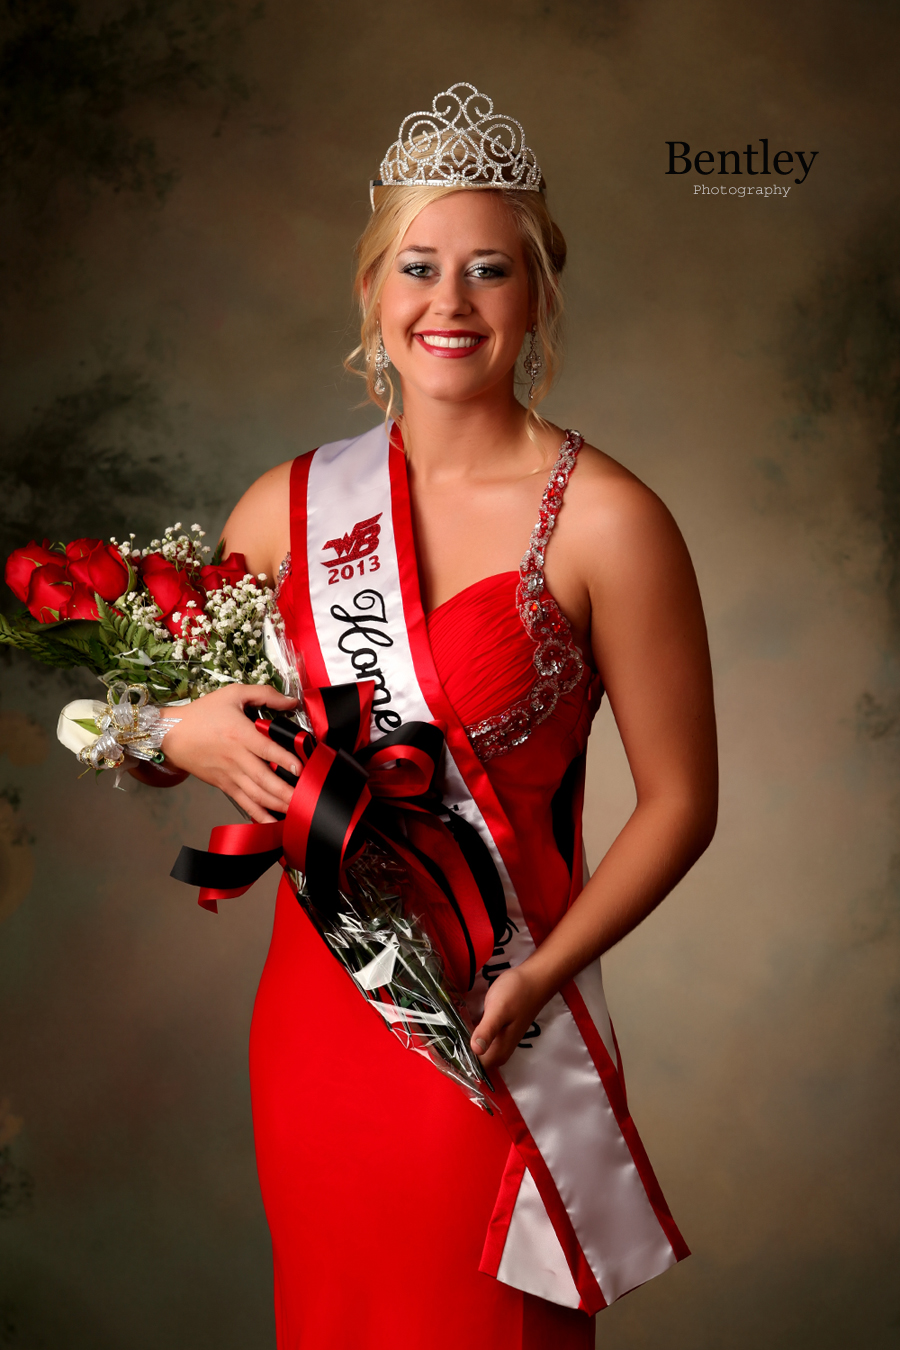 WBHS Homecoming Queen Whitney Senior Portrait Photography